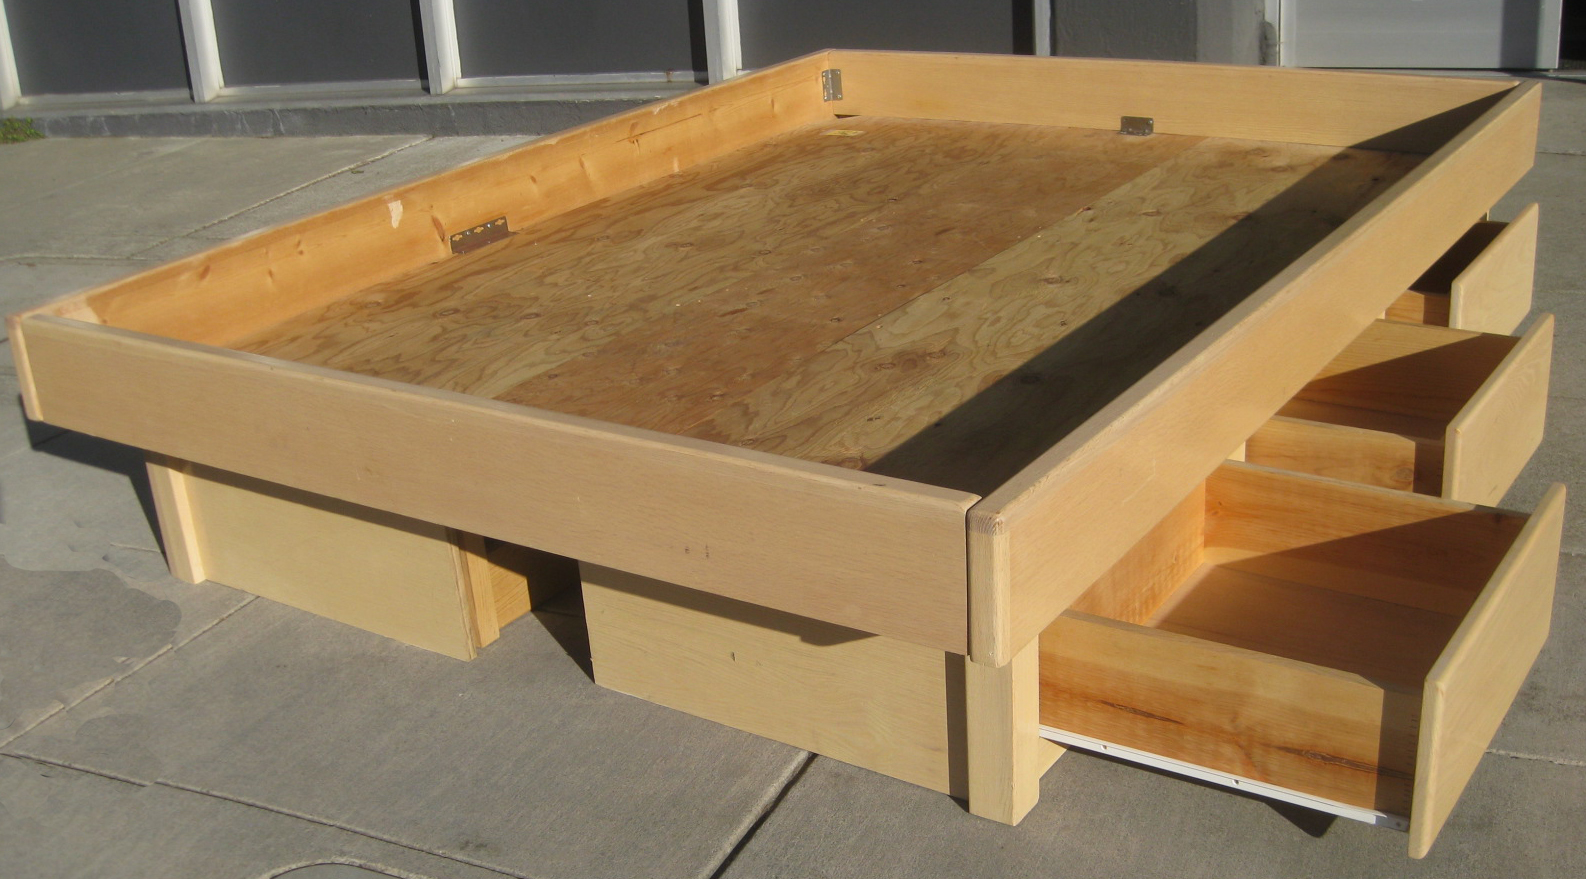 diy queen size platform bed plans | Online Woodworking Plans